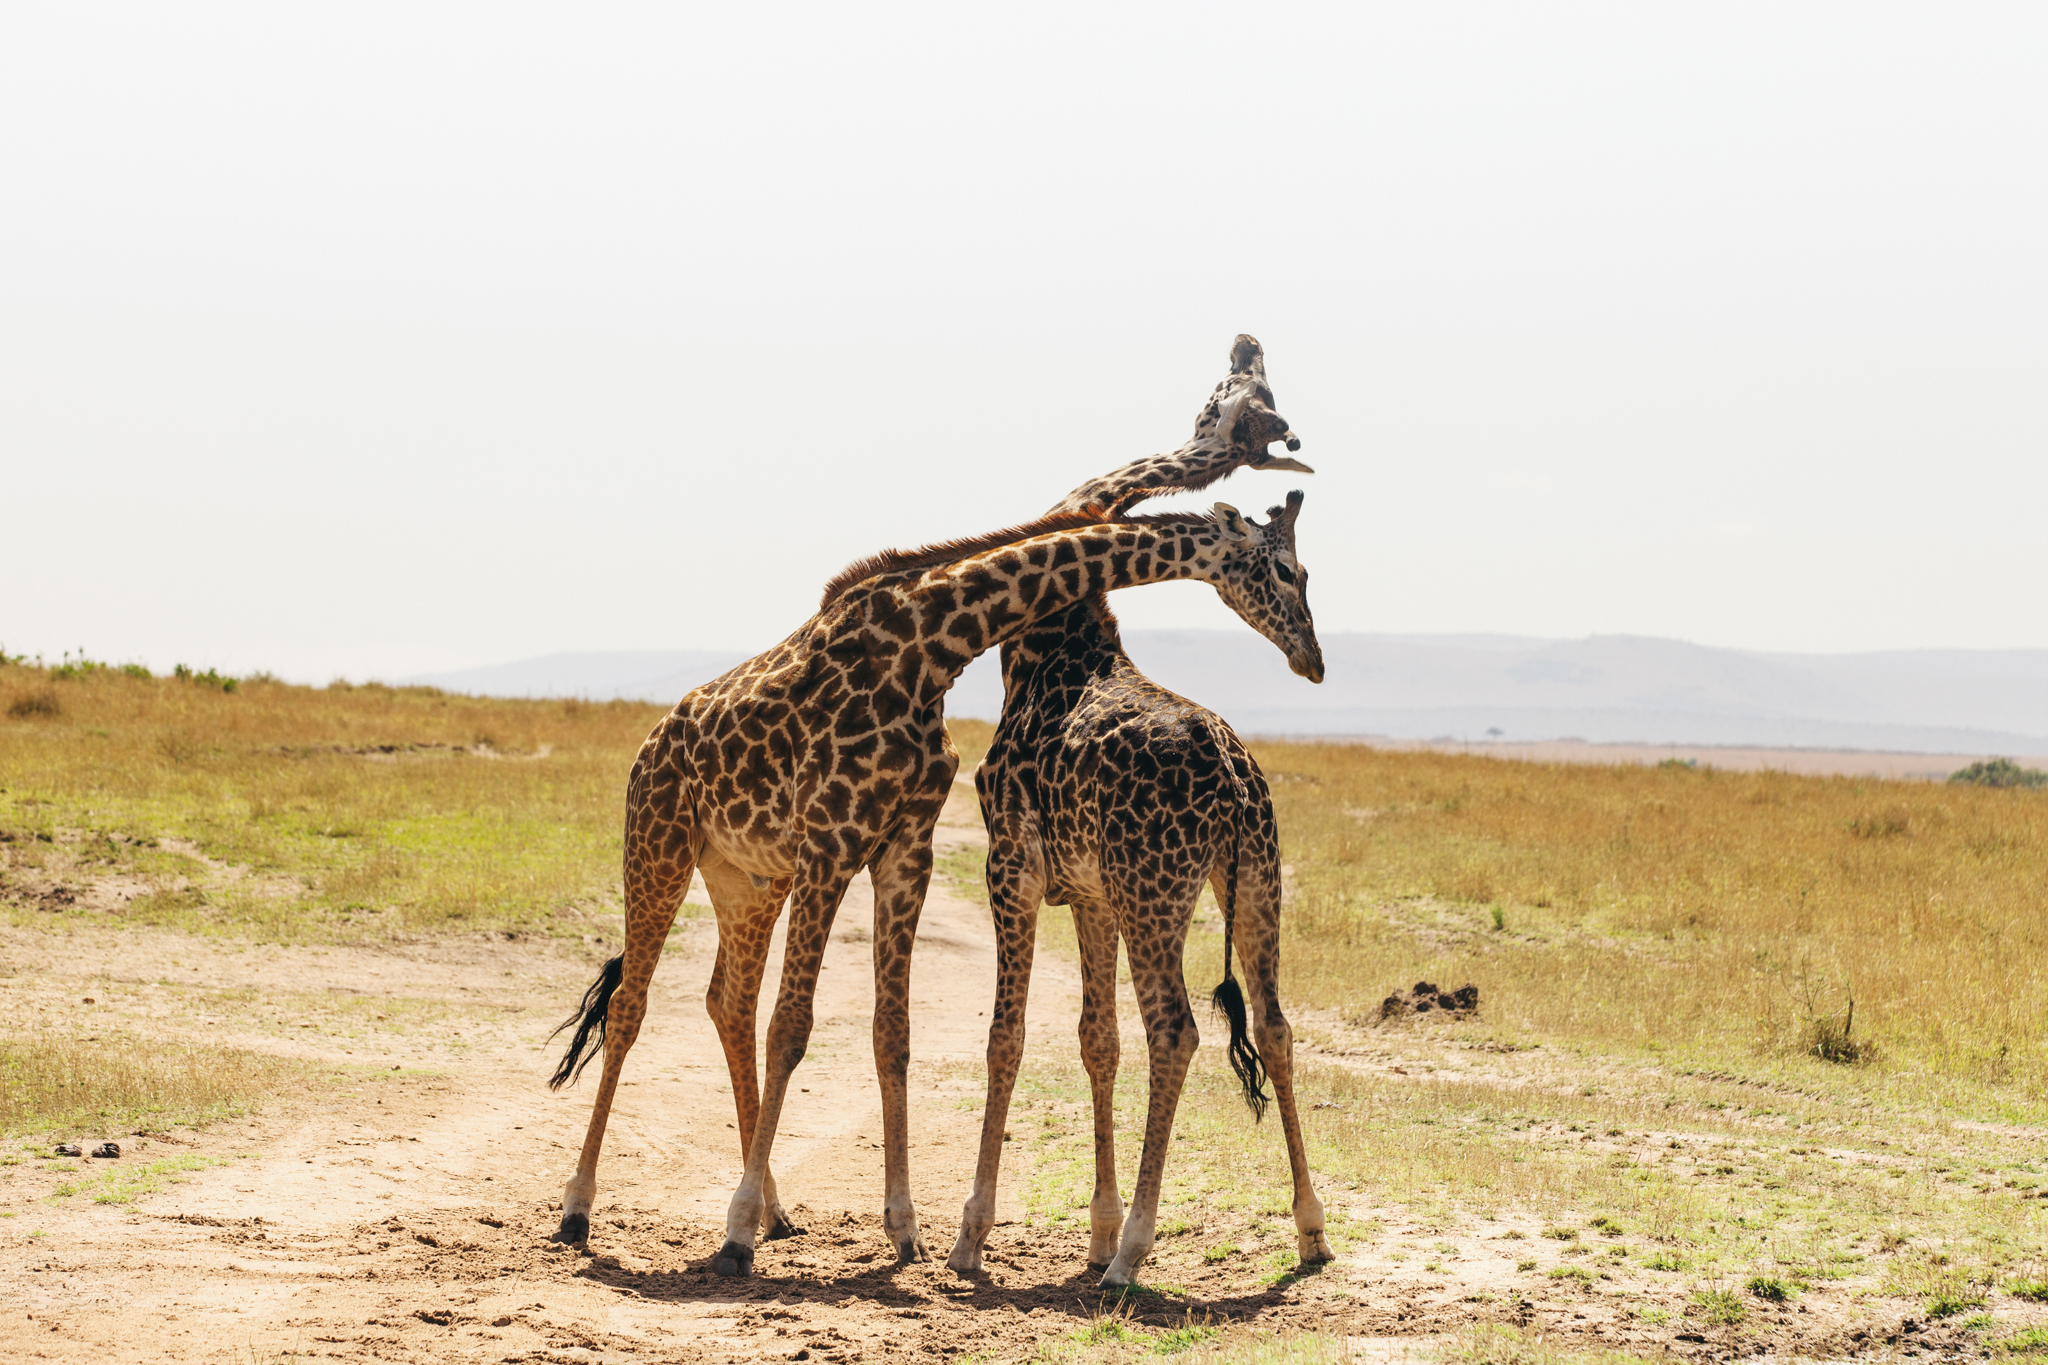 SO many giraffe pictures... I couldn't help myself... they're just so beautiful!